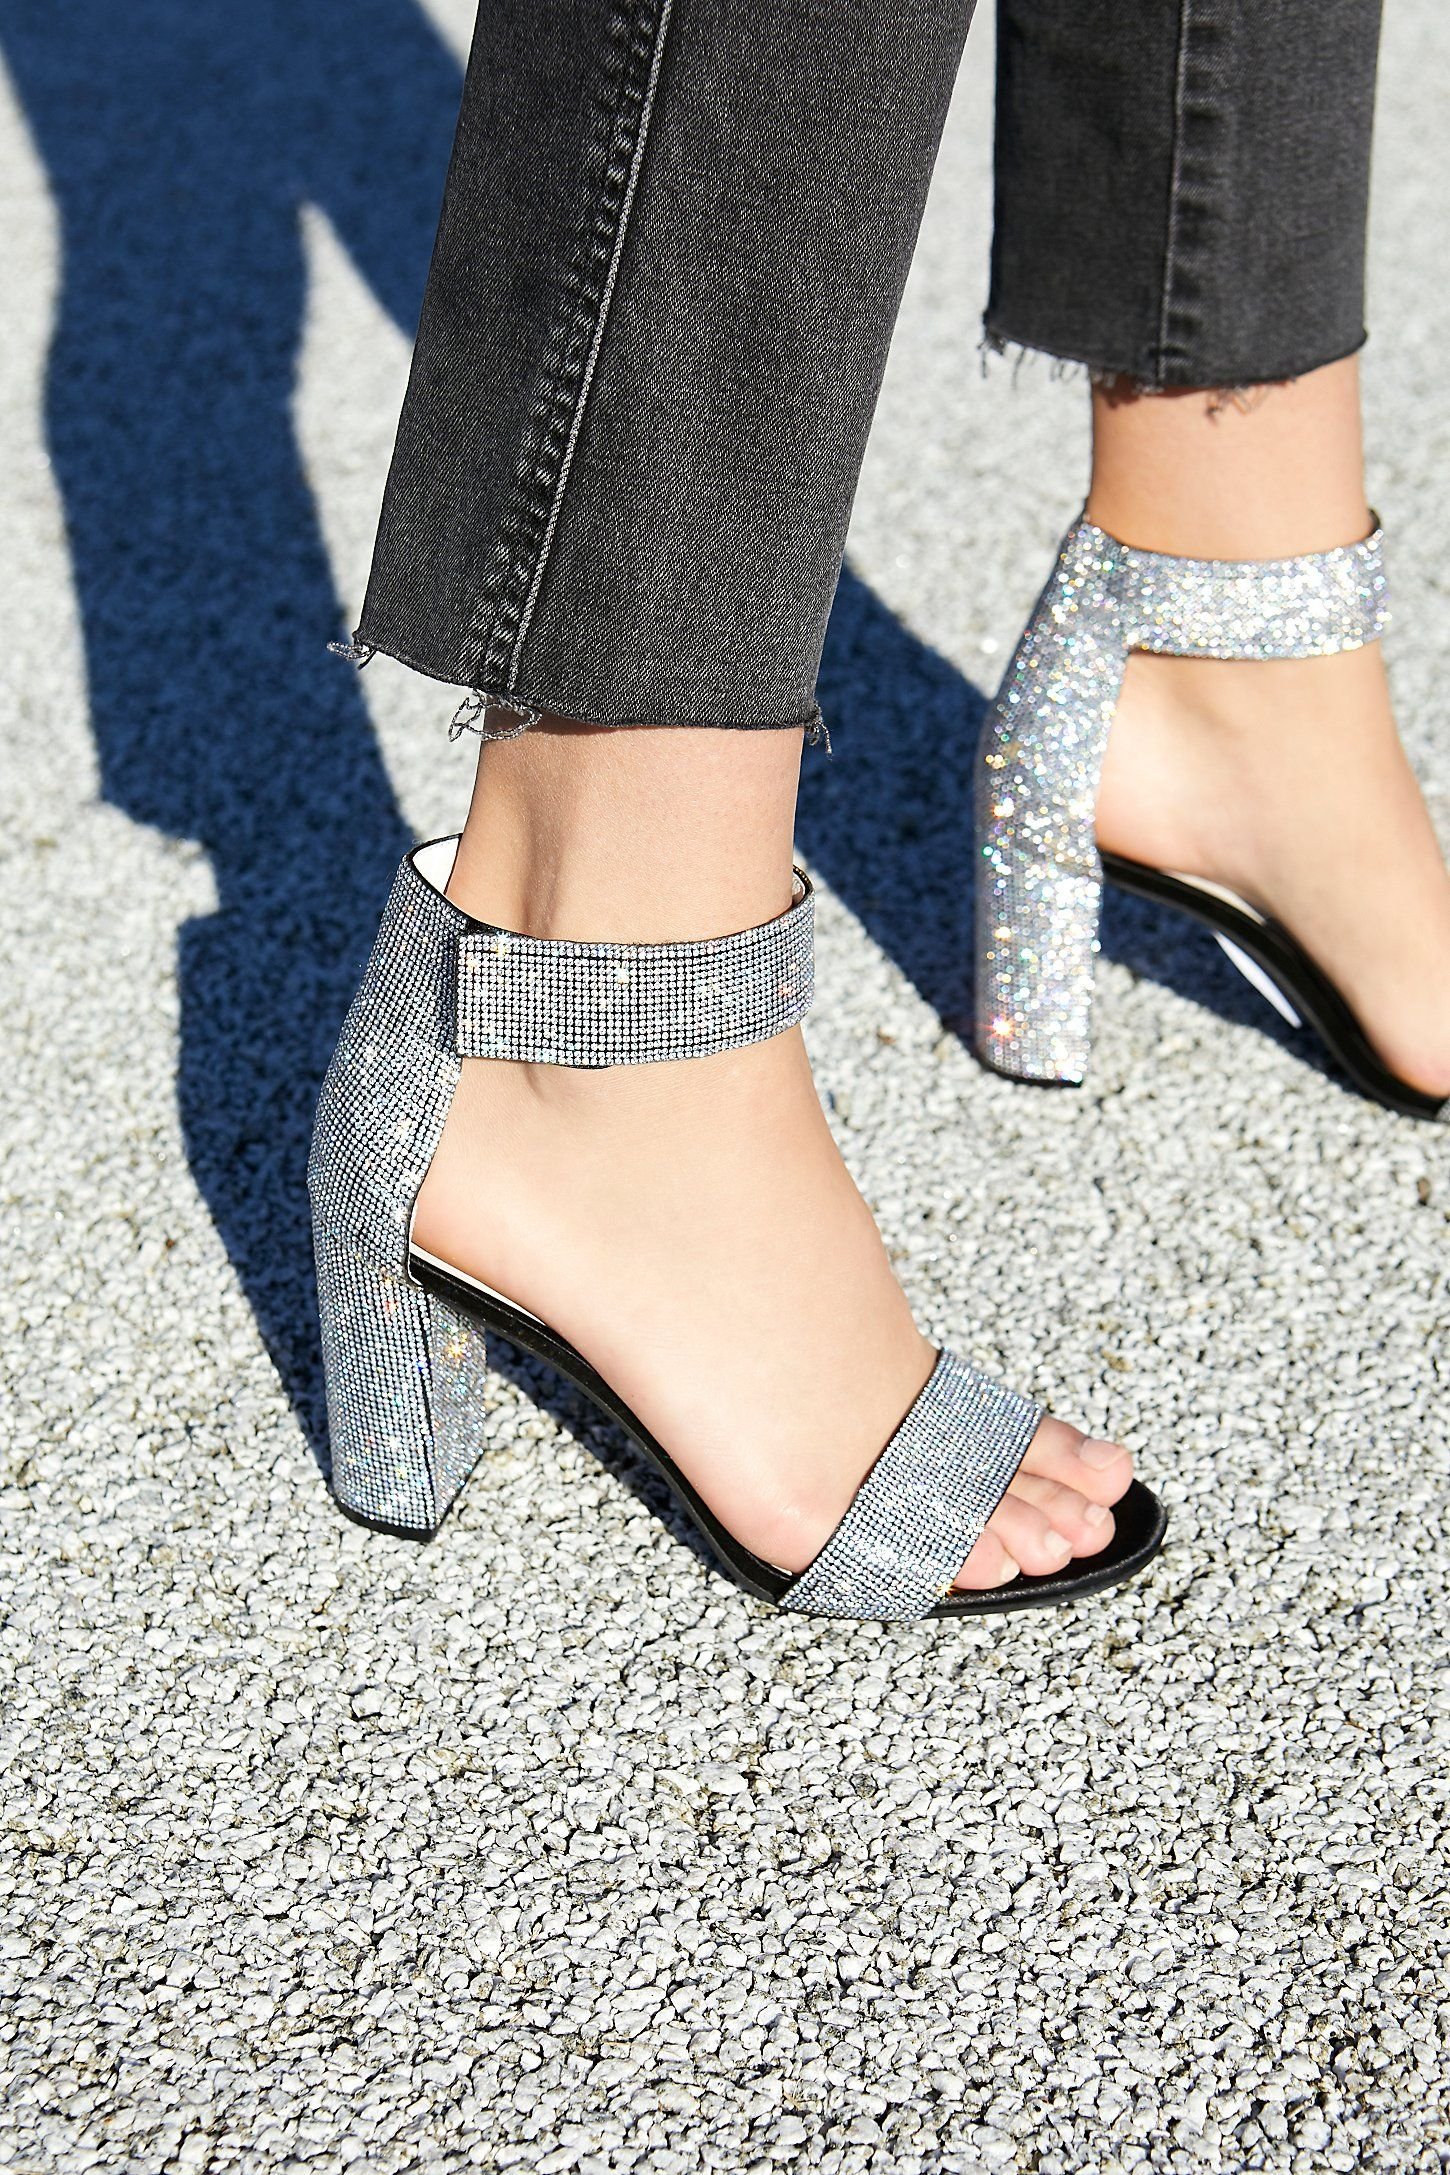 Block Heels to Shop (Because Everyone Should Own a Pair of BlockHeels) forecasting